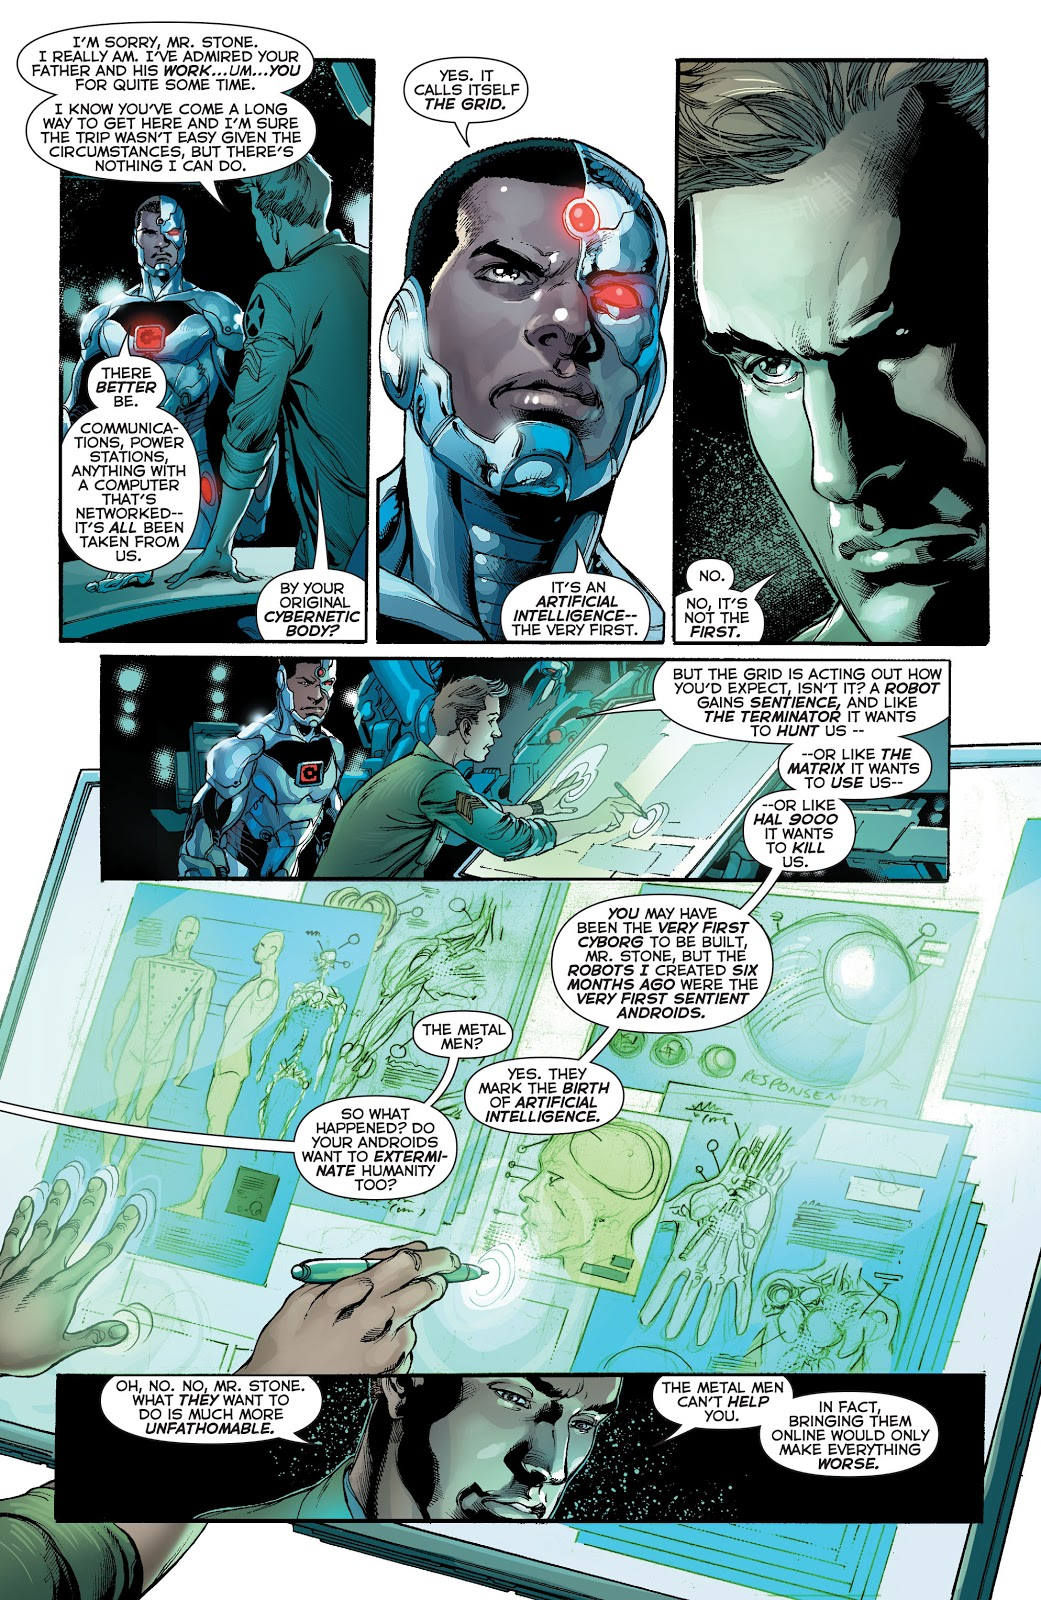 In 'Justice League' (2014) #28, Dr. William Magnus tells Cyborg of the creation of the Metal Men, the First A.I. on Prime Earth.